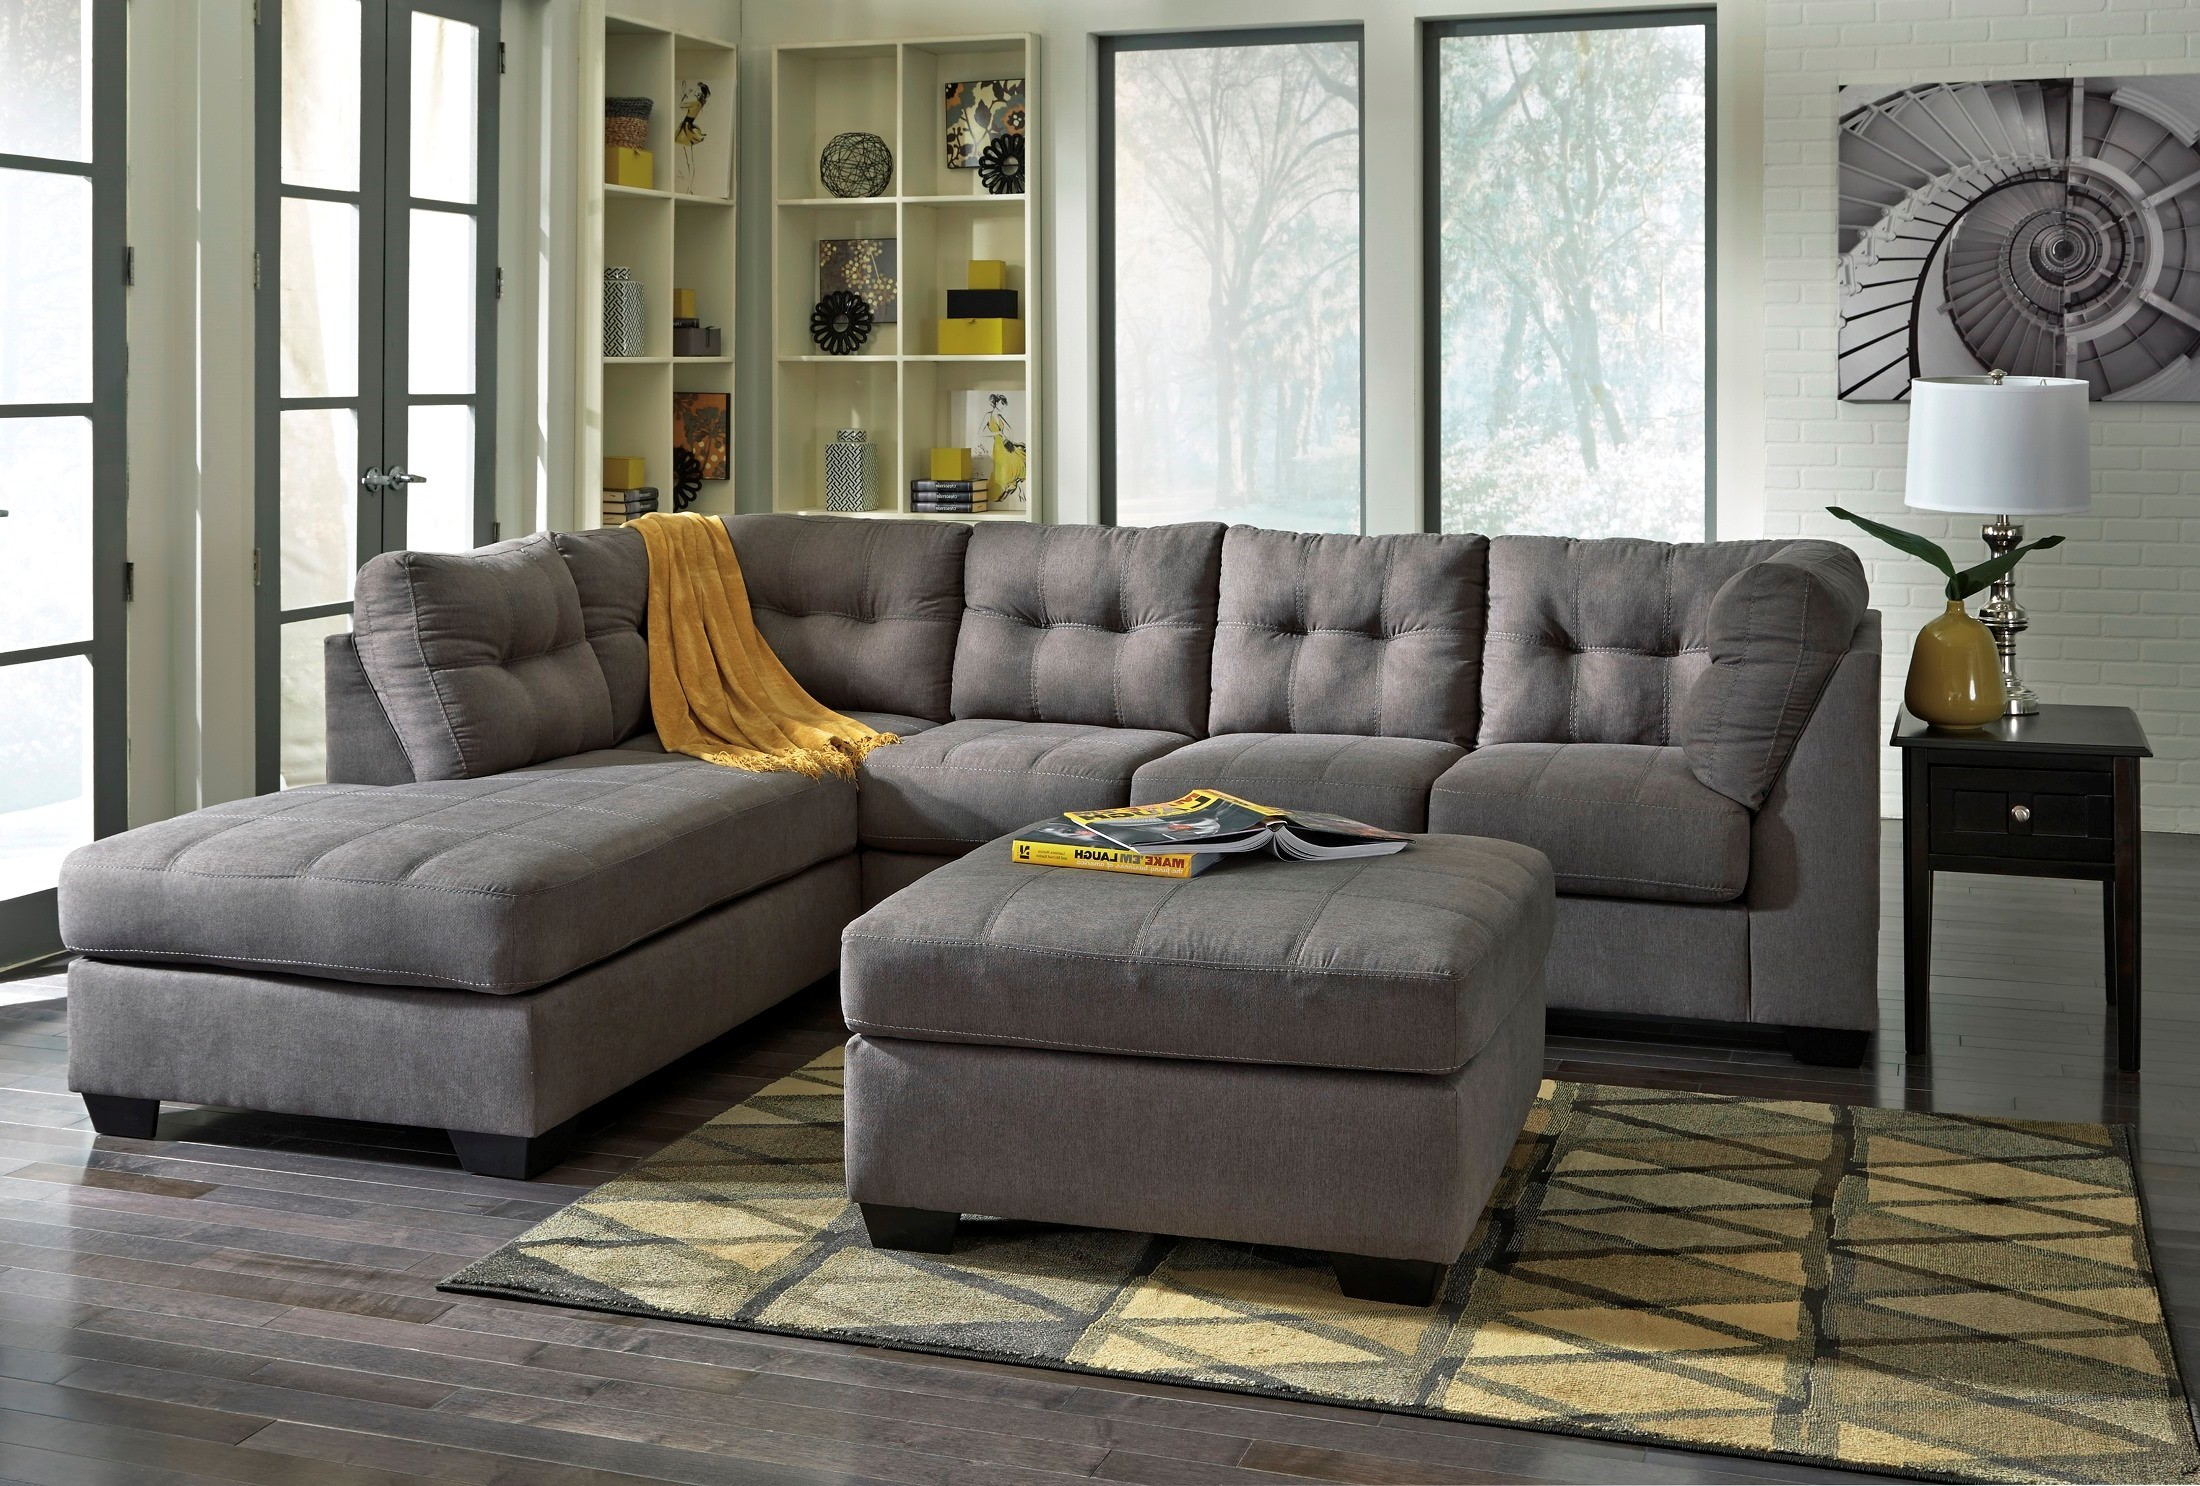 Maier charcoal laf sectional from ashley 45200 16 67 - Pictures of living rooms with sectionals ...